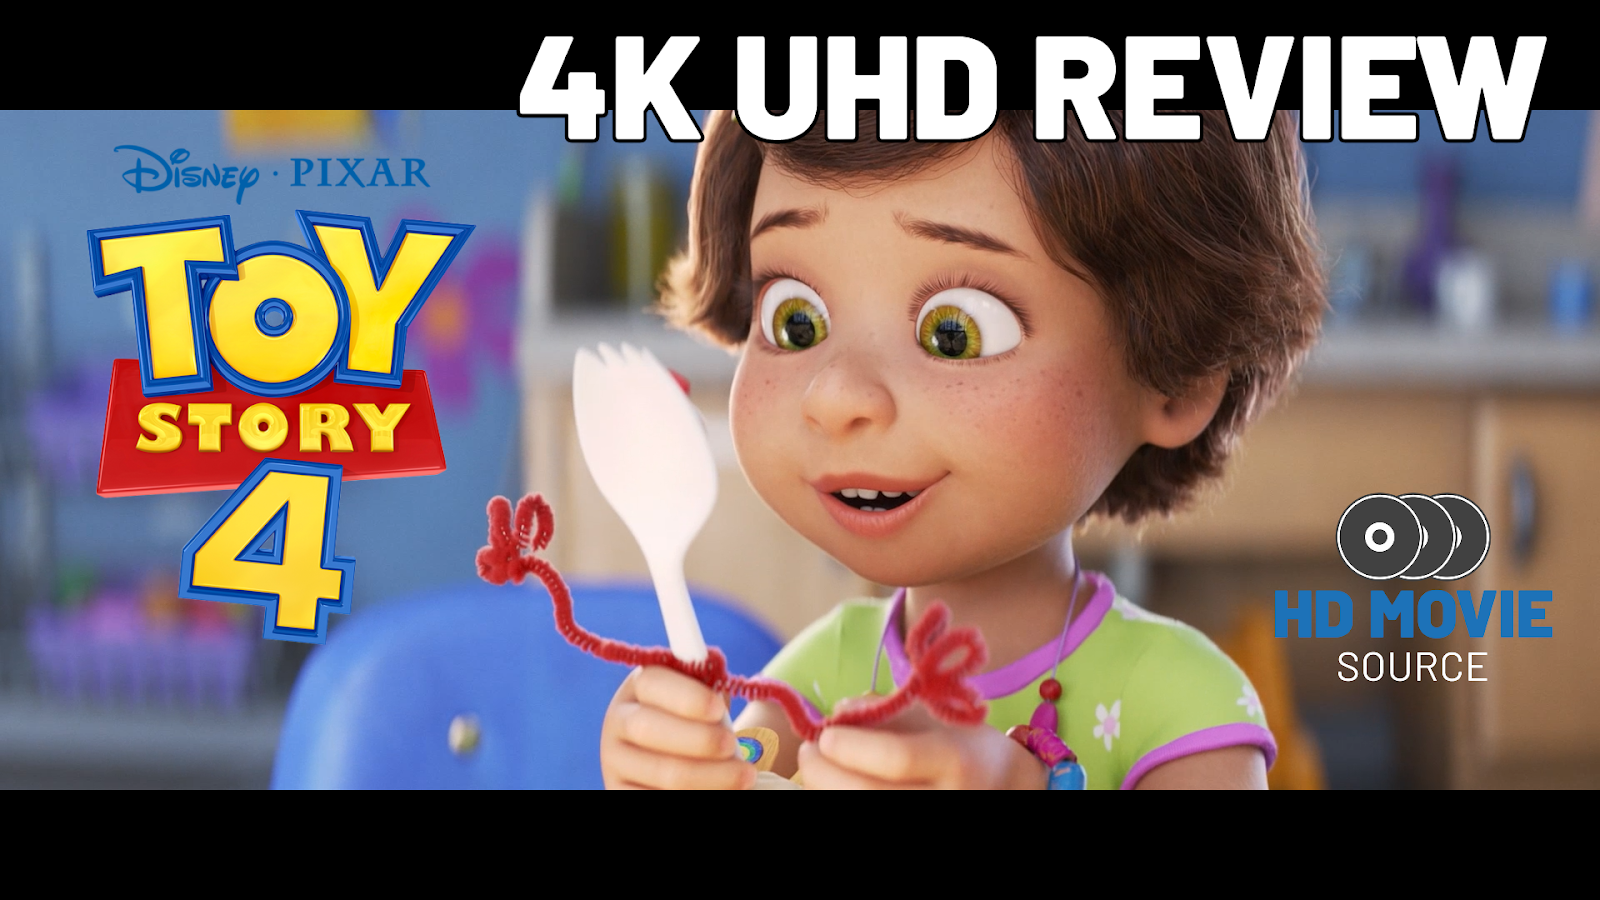 Toy Story 4 2019 4k Ultra Hd Blu Ray Review The Basics